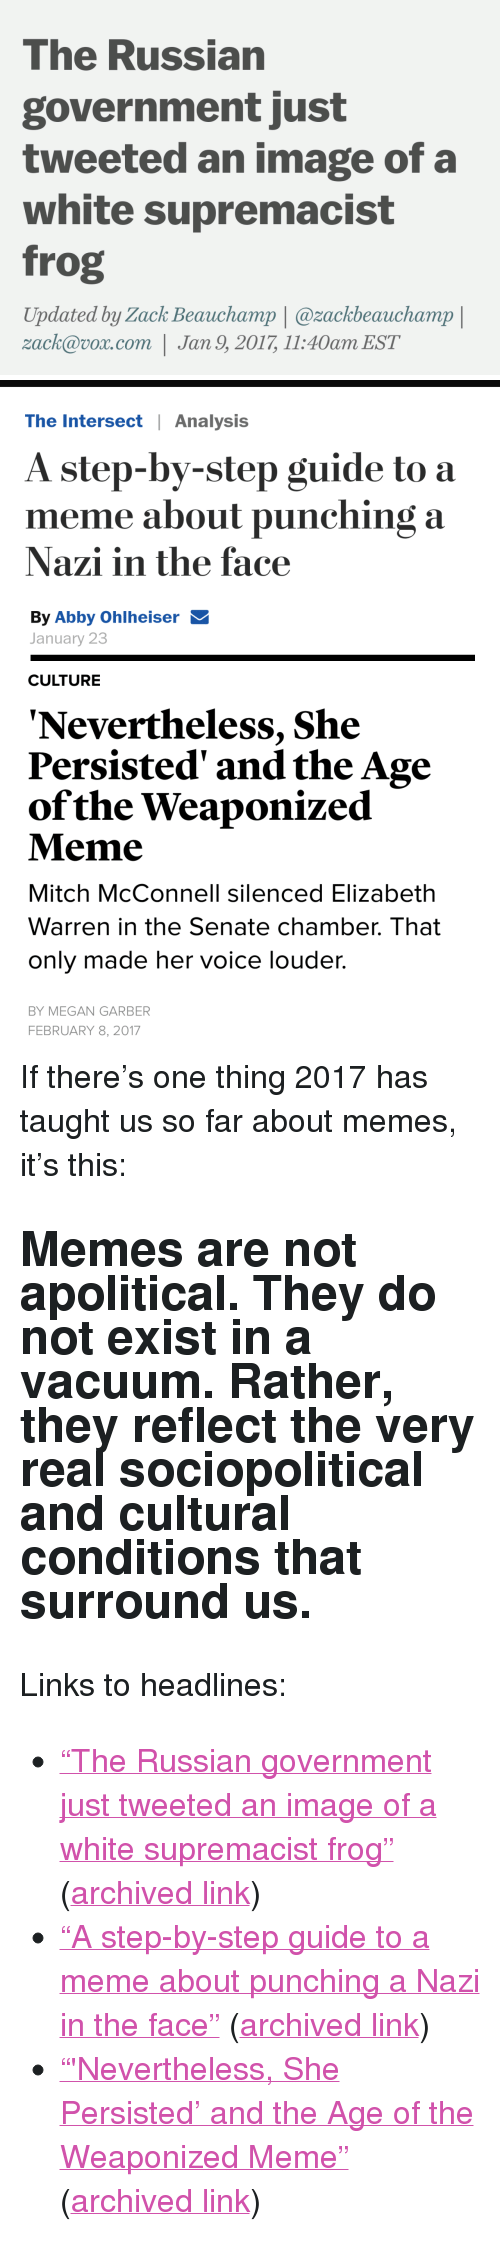 """Elizabeth Warren, Megan, and Meme: The Russian  government just  tweeted an image of a  white supremacist  frog  Updated by Zack Beauchamp 